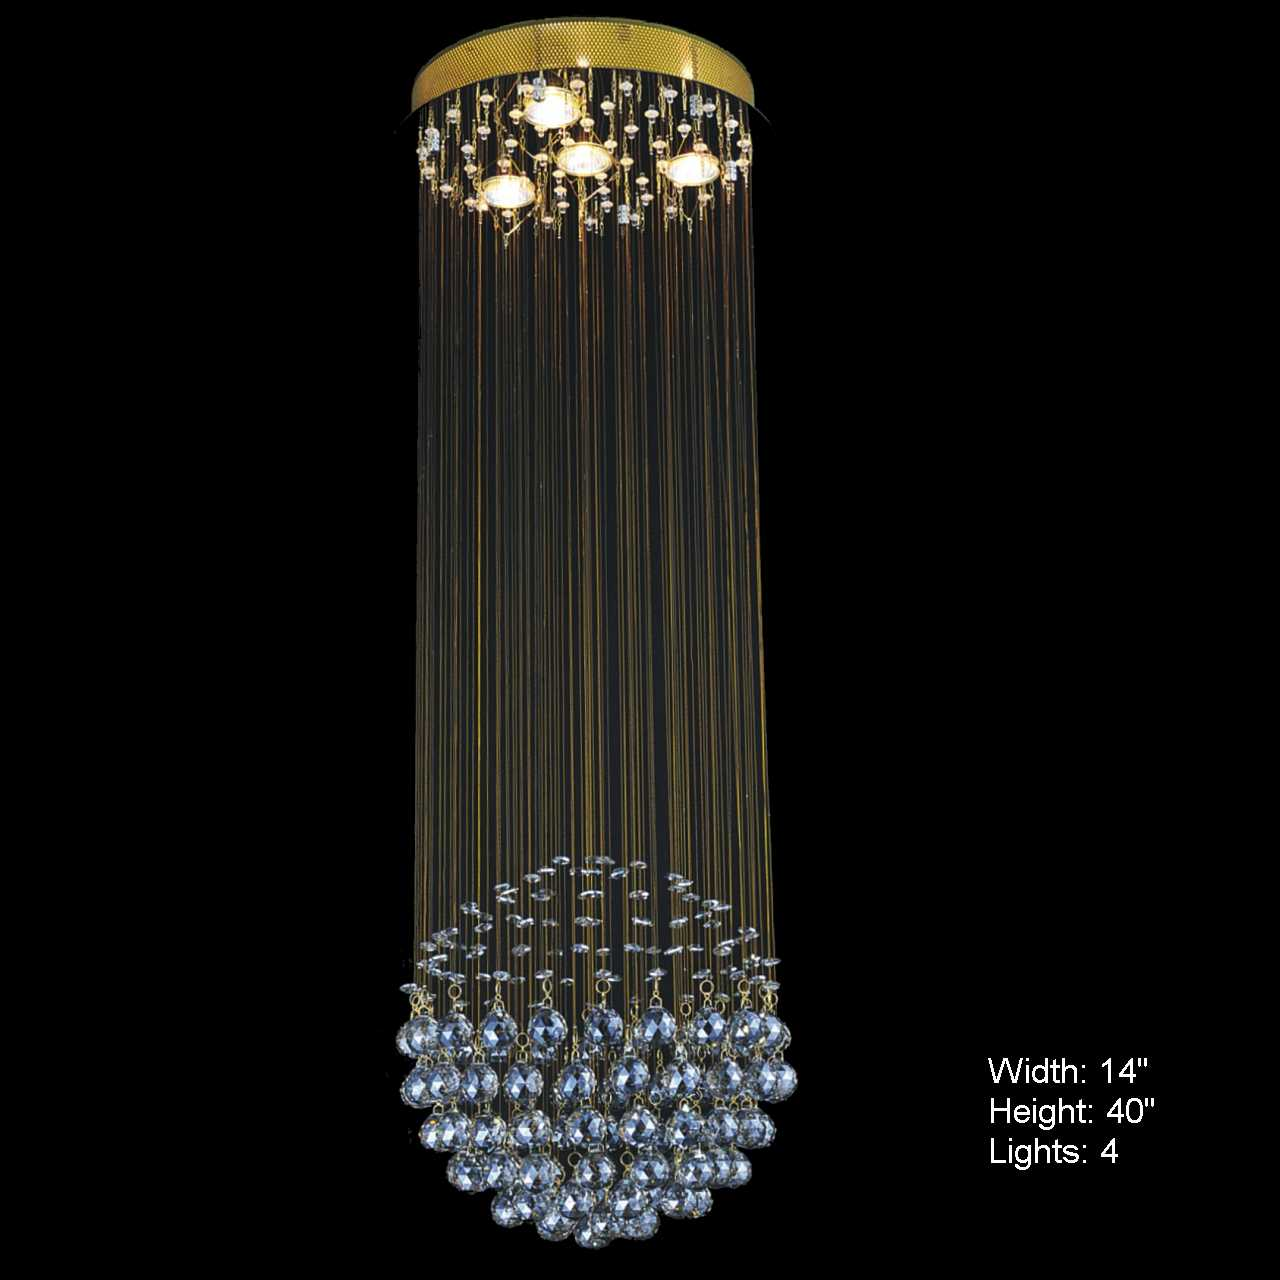 Brizzo lighting stores sphere modern crystal chandelier small picture of sphere modern crystal chandelier small mirror stainless steel base 1 light aloadofball Images